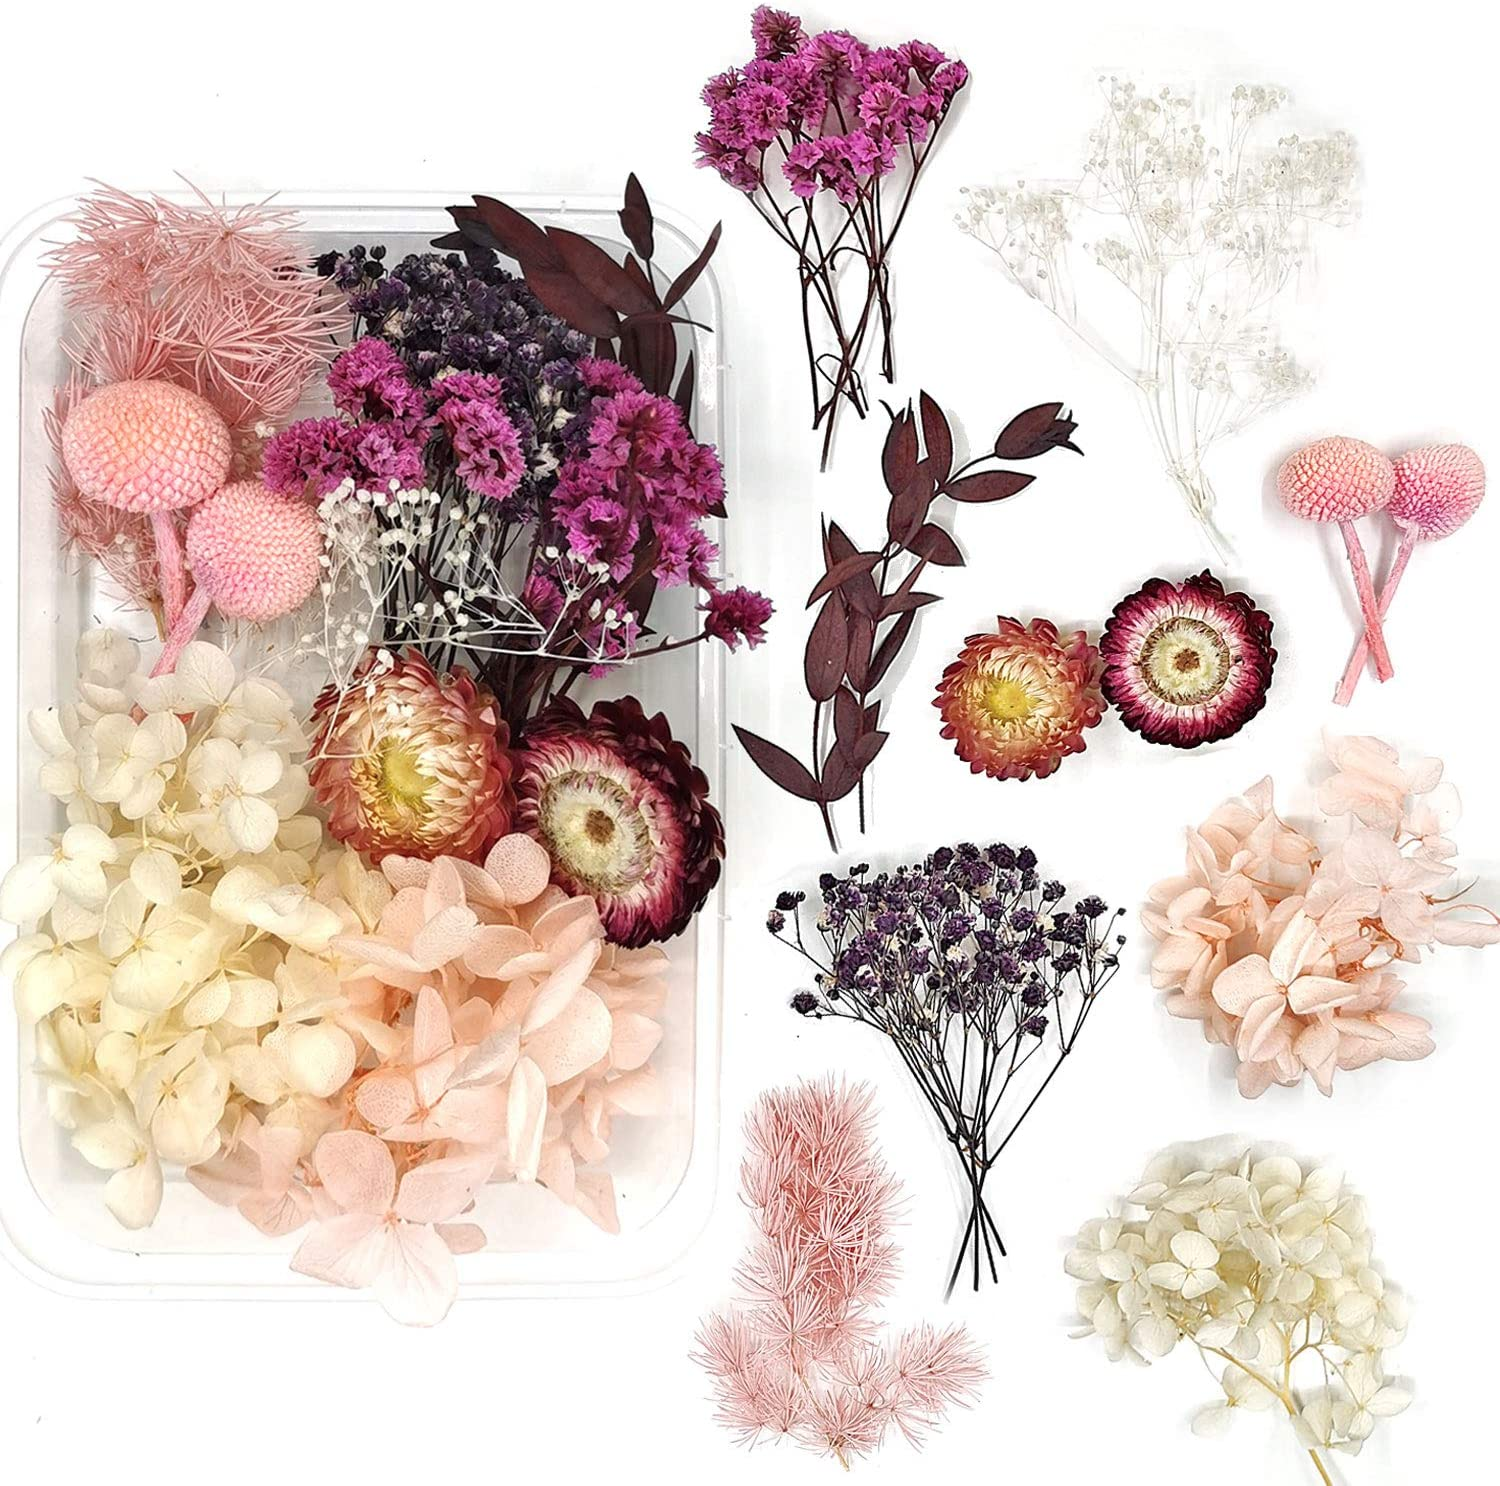 Real Natural Dried Flowers Popular brand for Mixed Craft Colorful Art Multiple In stock